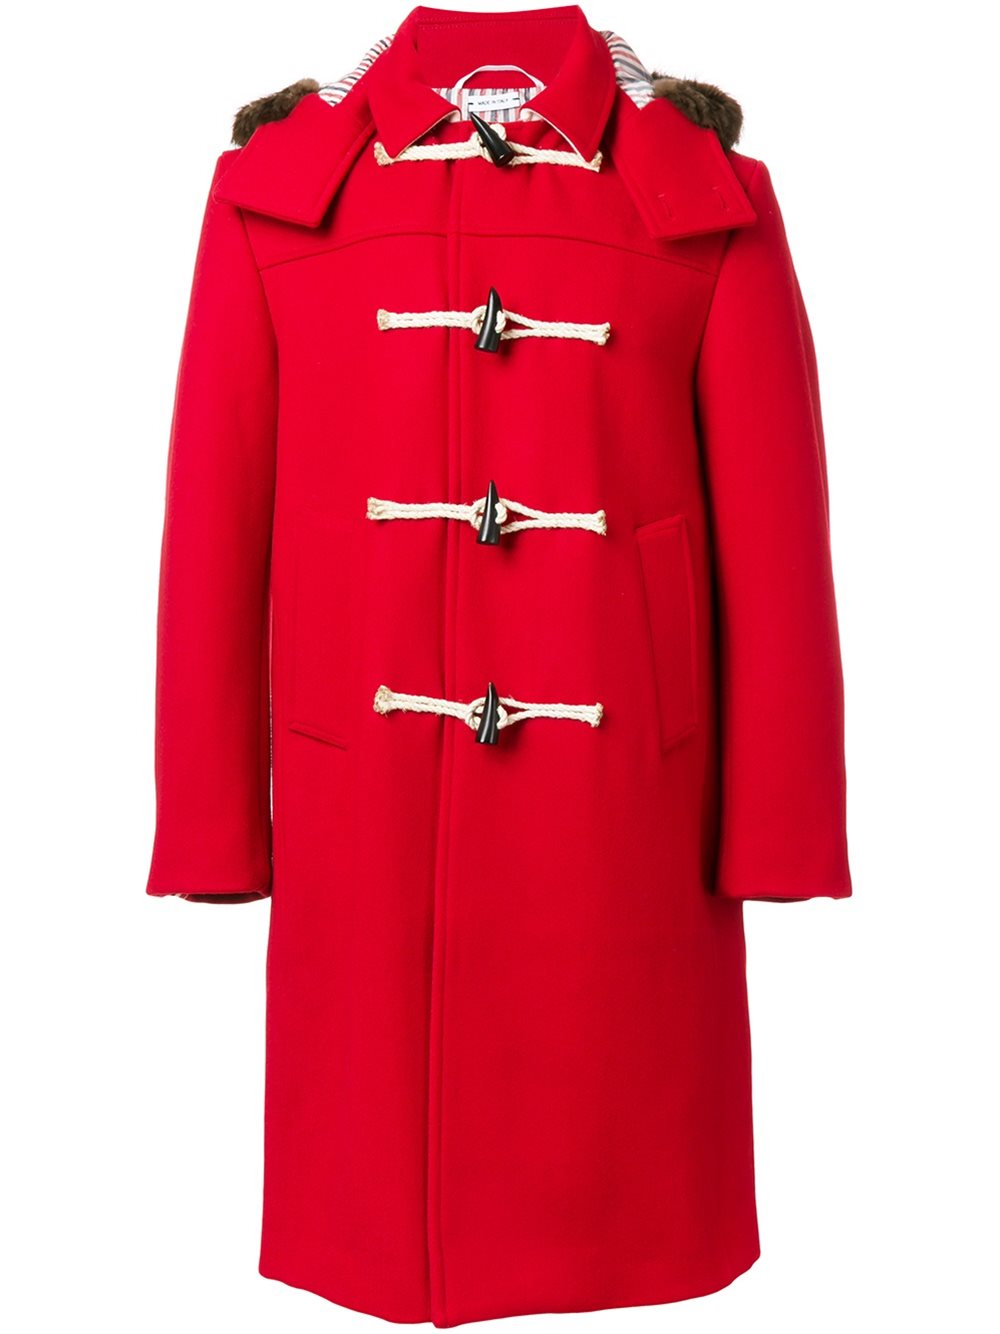 lyst thom browne hooded duffle coat in red for men. Black Bedroom Furniture Sets. Home Design Ideas